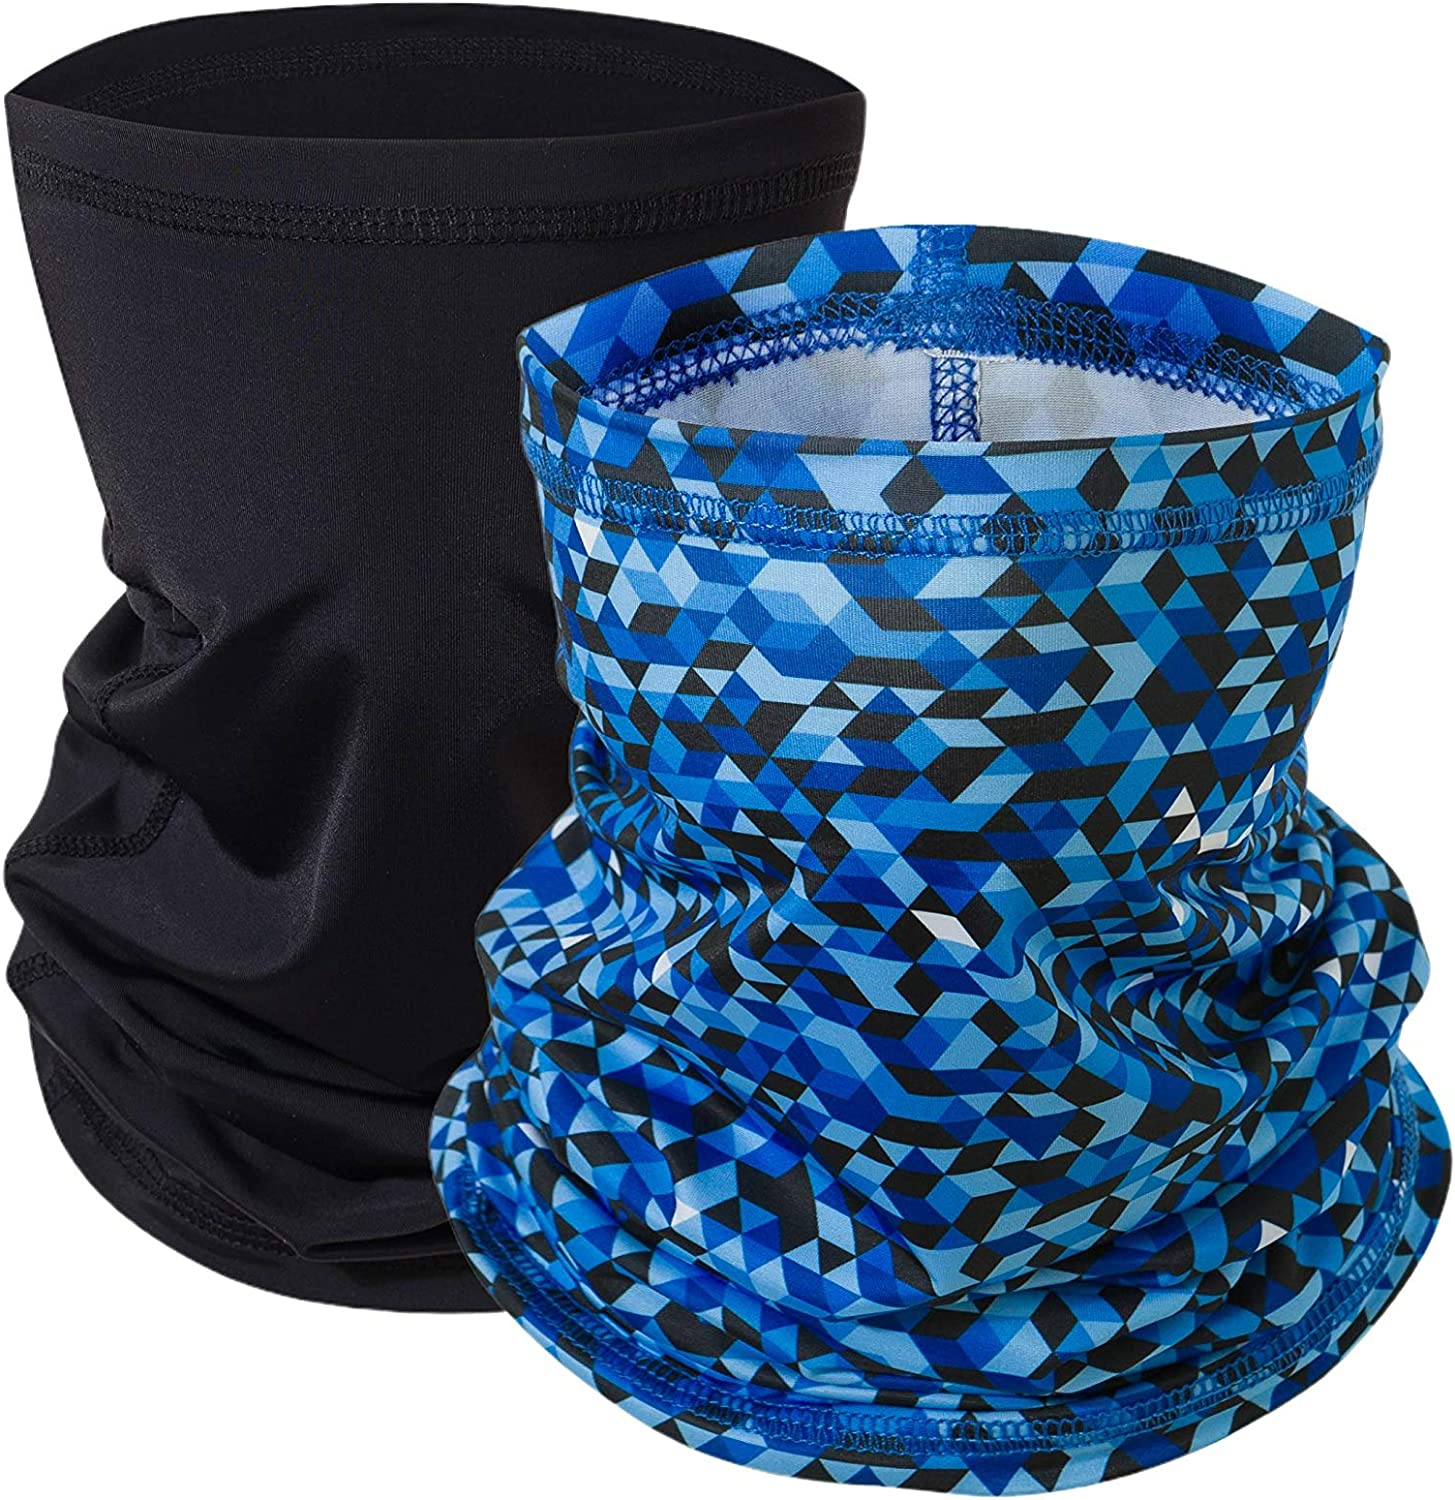 Balaclava Neck Gaiter Scarf Cooling Sports Bandana Face Cover UV Wind Protection Outdoor